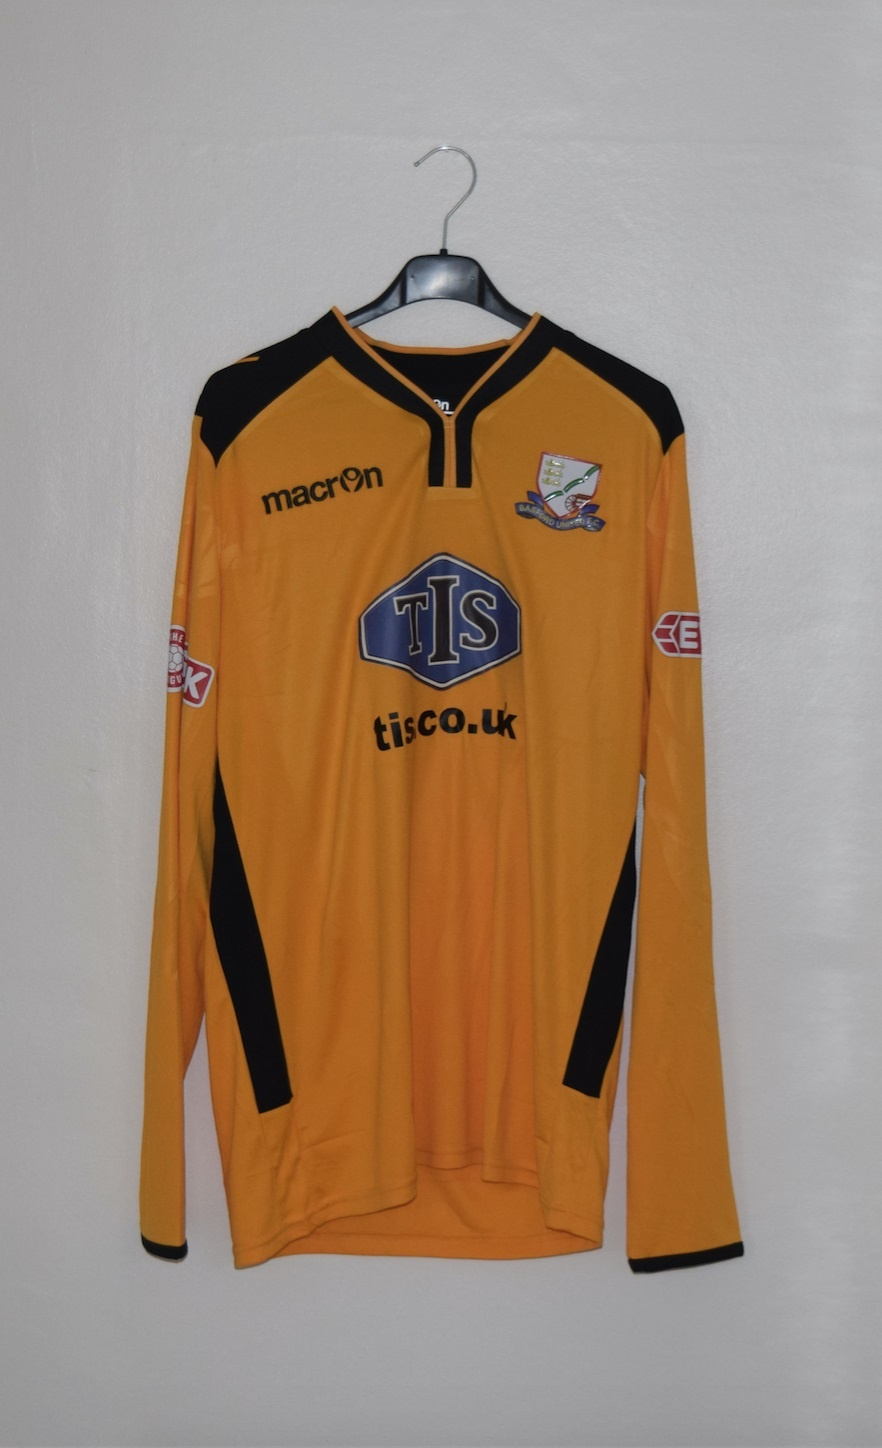 Image: Amber replica shirt